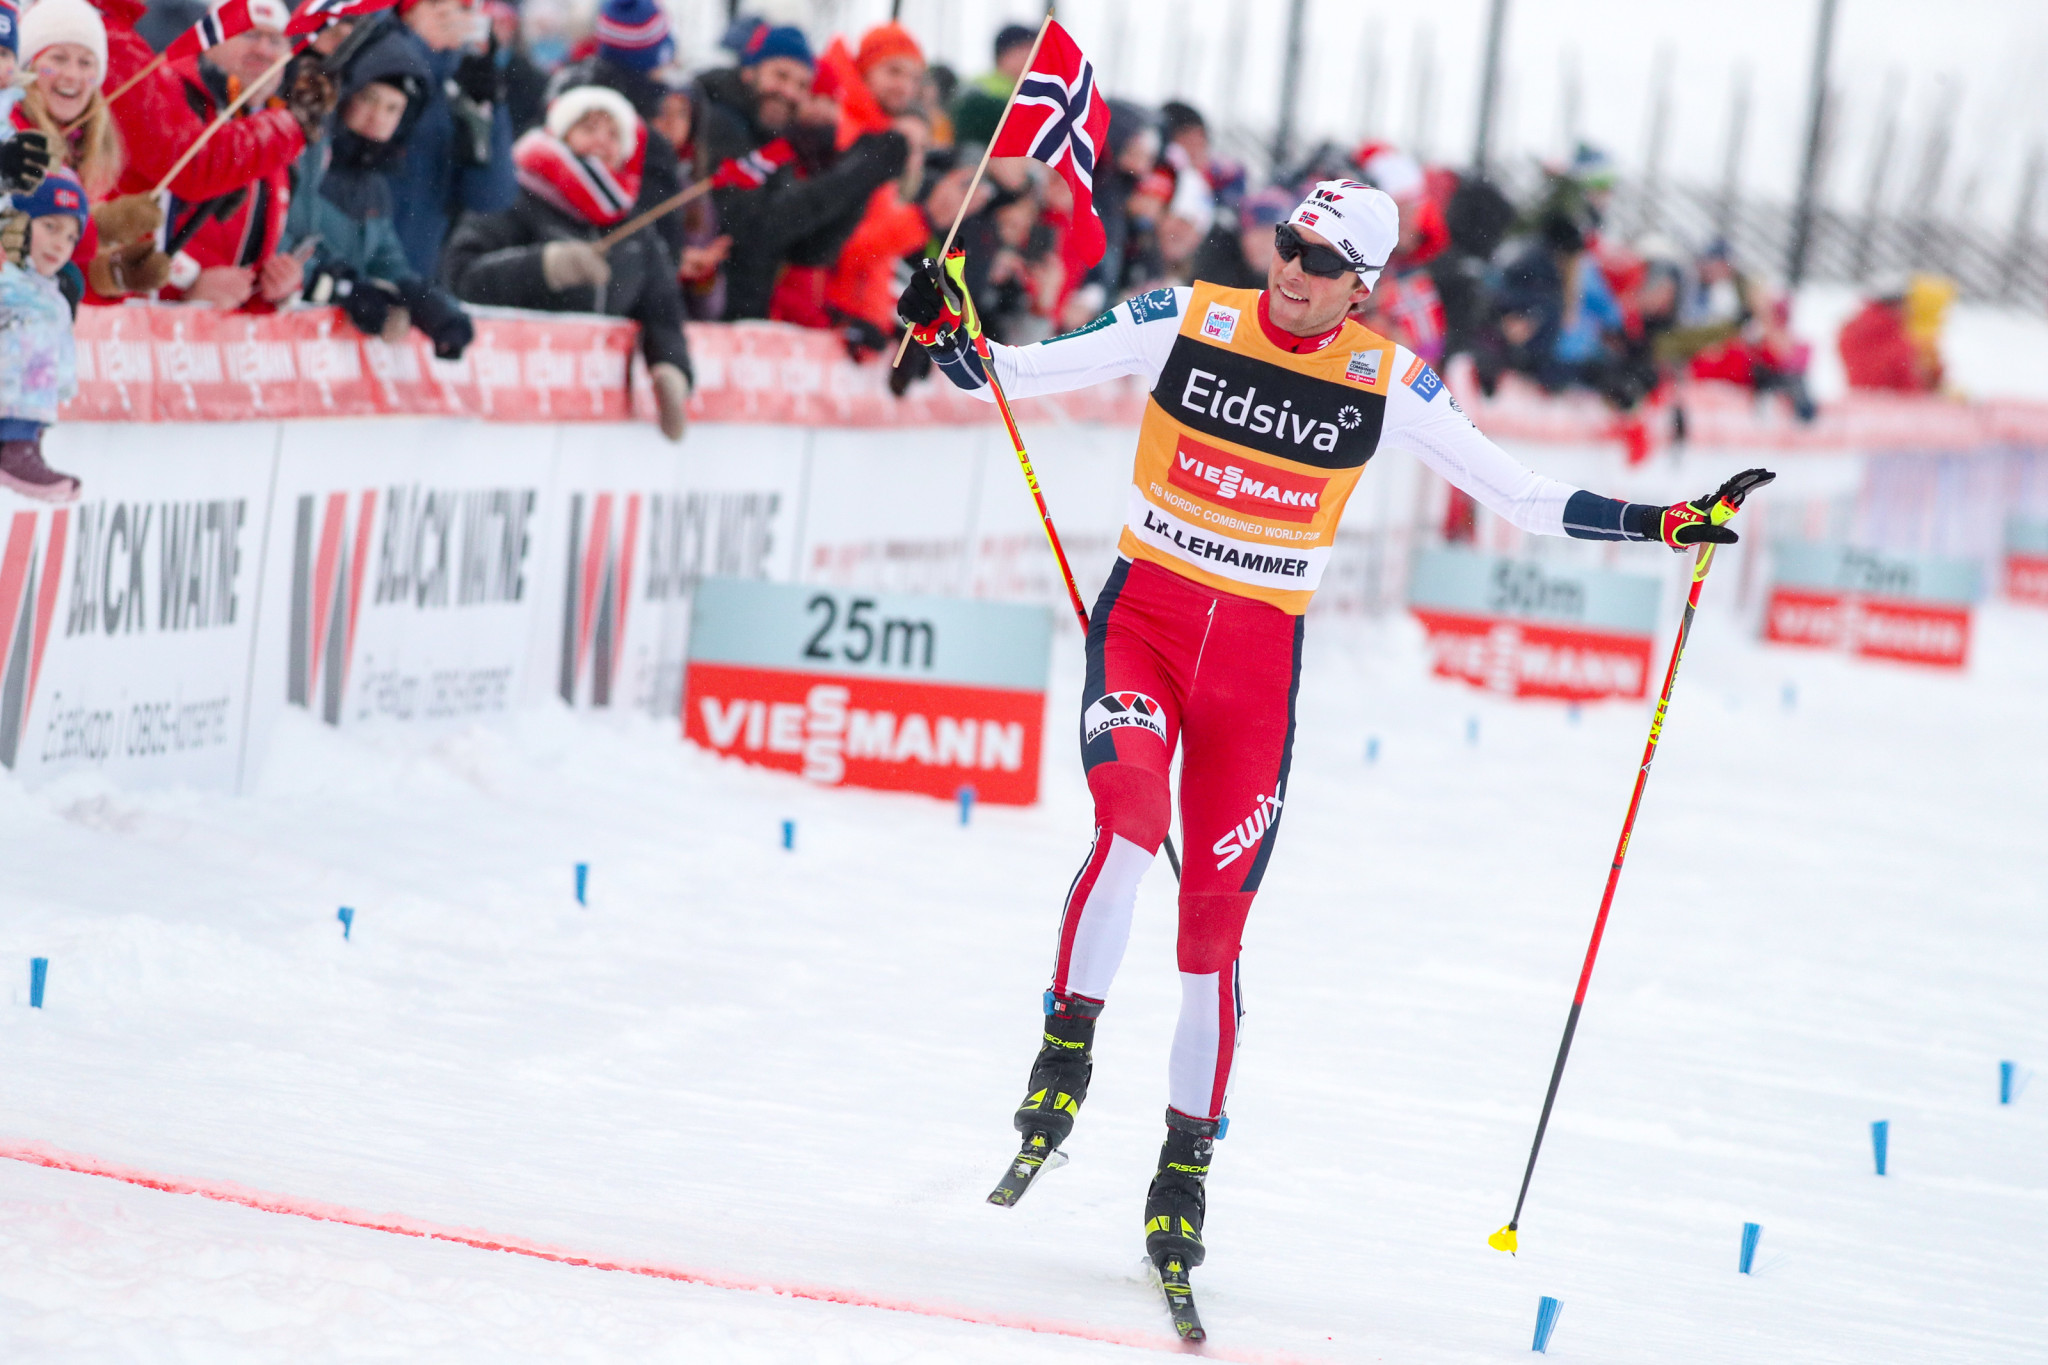 Riiber beats Watabe to opening day Nordic Combined World Cup win in Seefeld on photo-finish